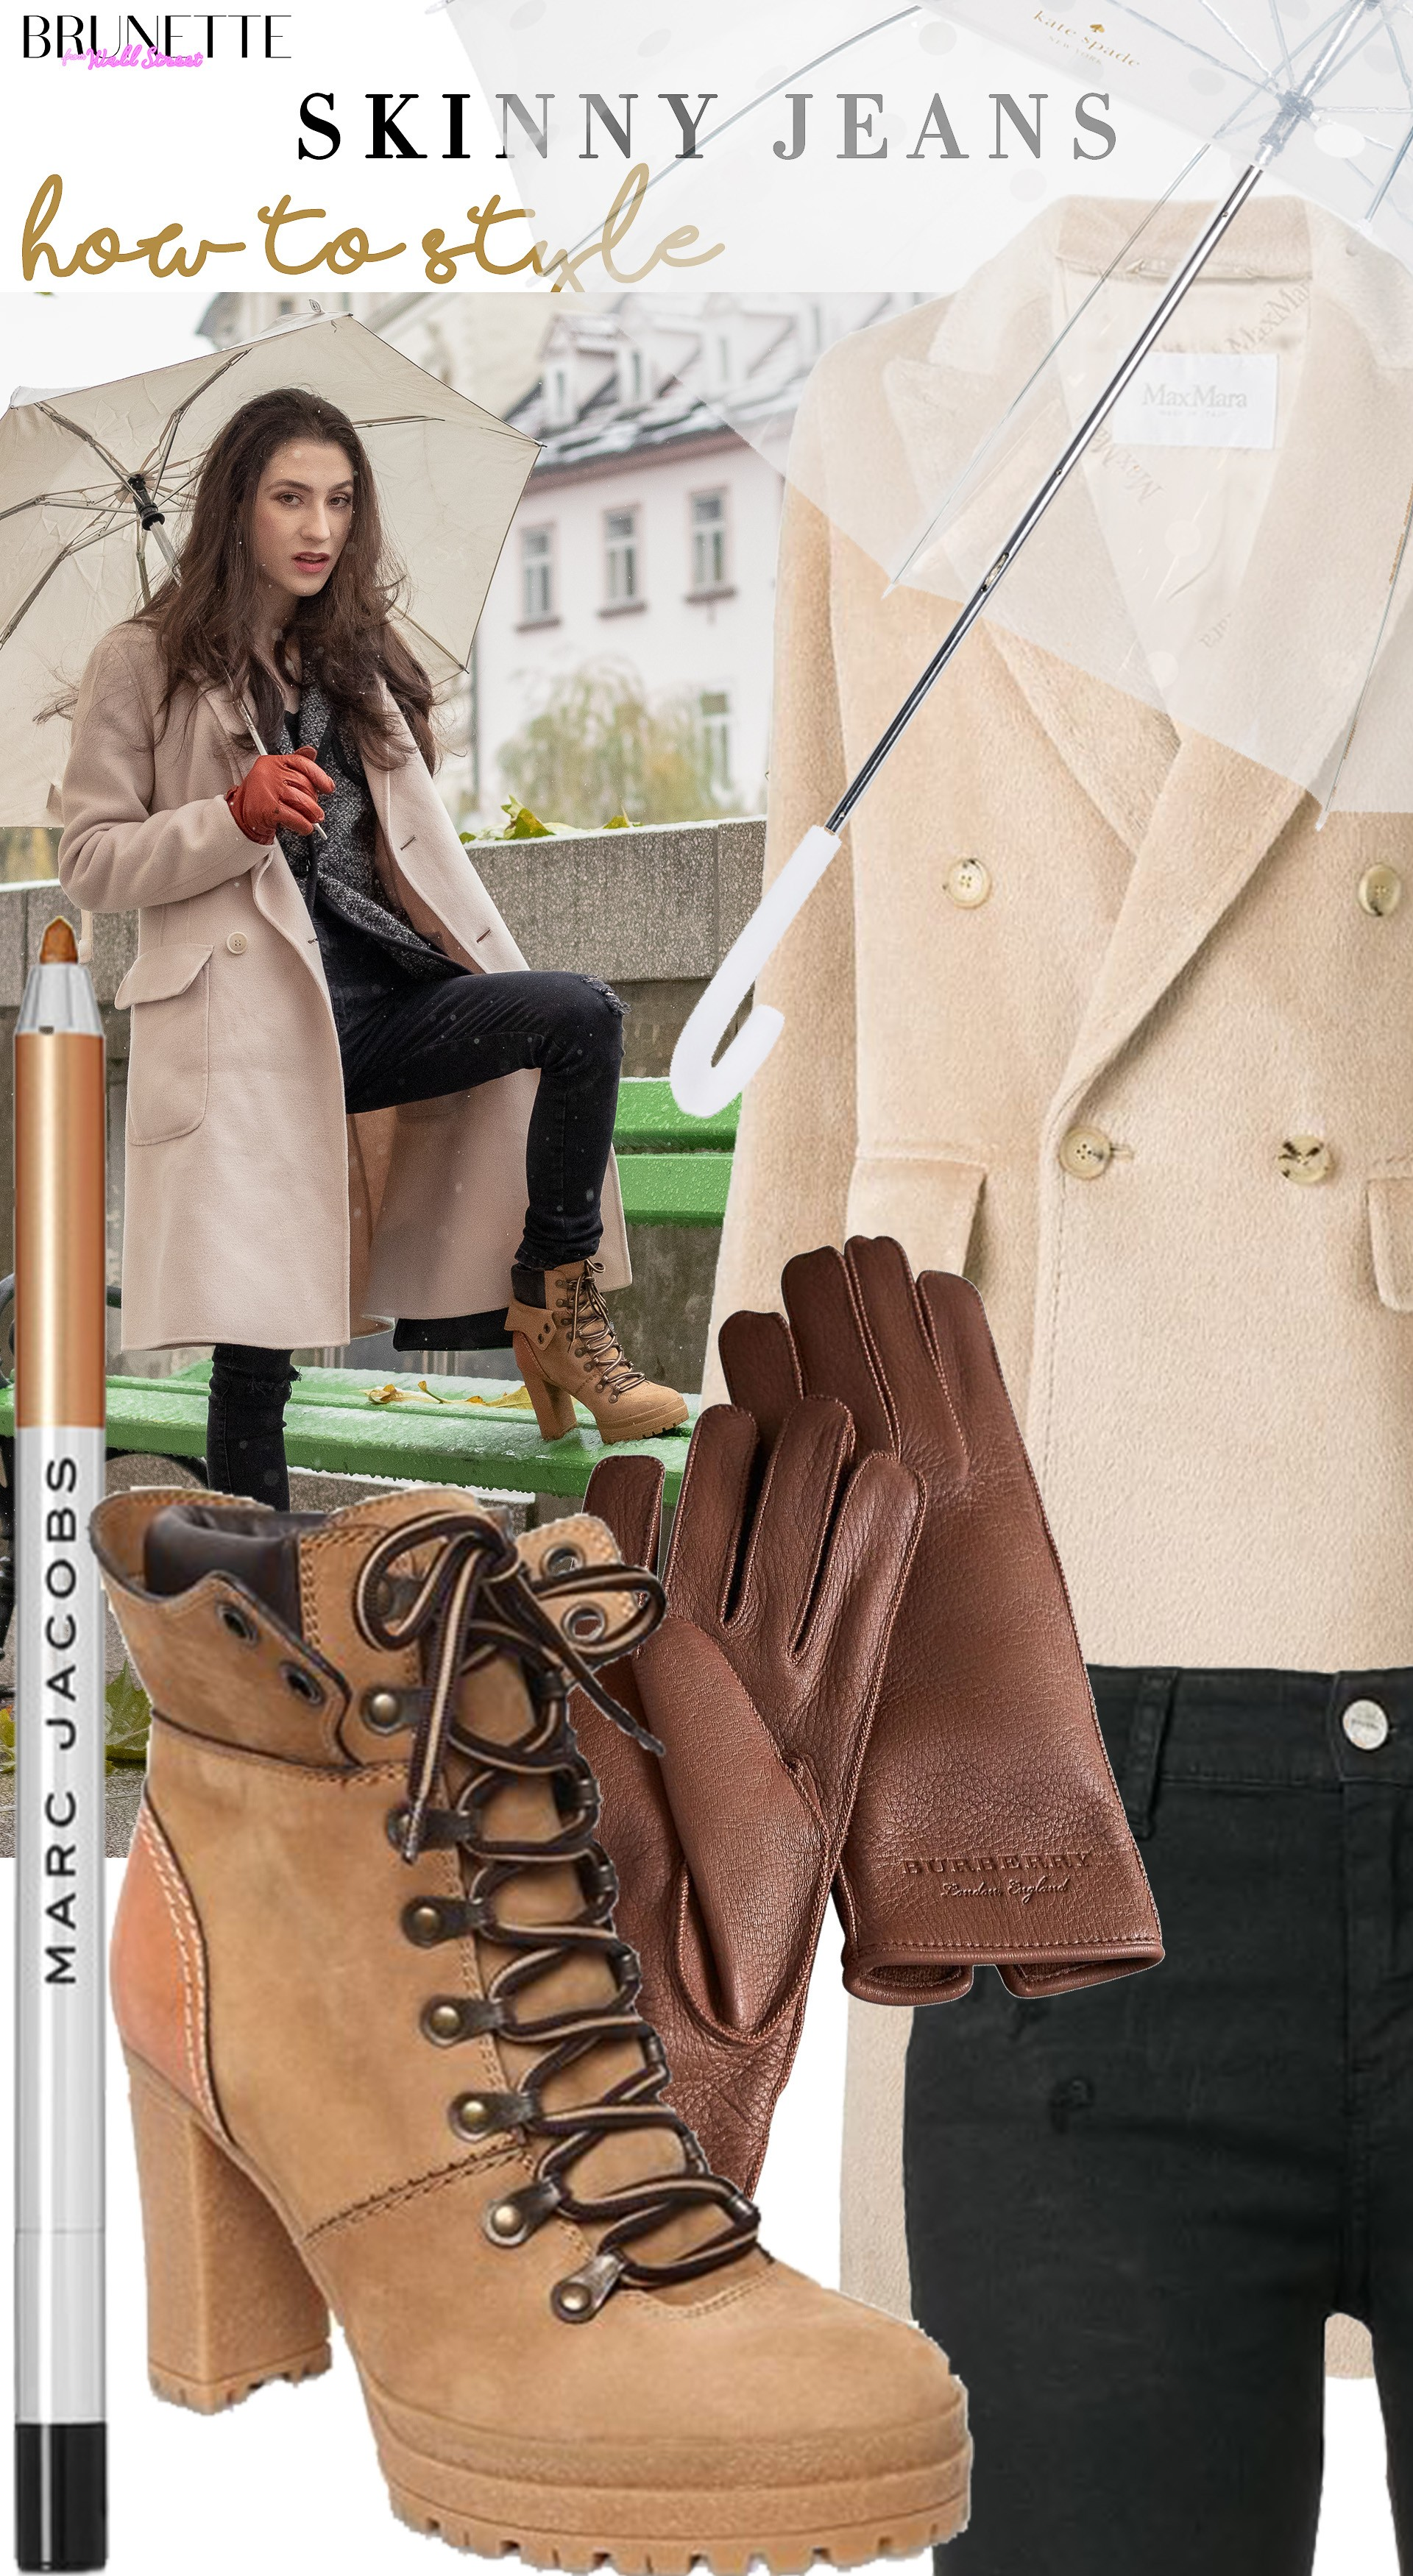 8b36d204458 How to Style Hiking Boots and Skinny Jeans